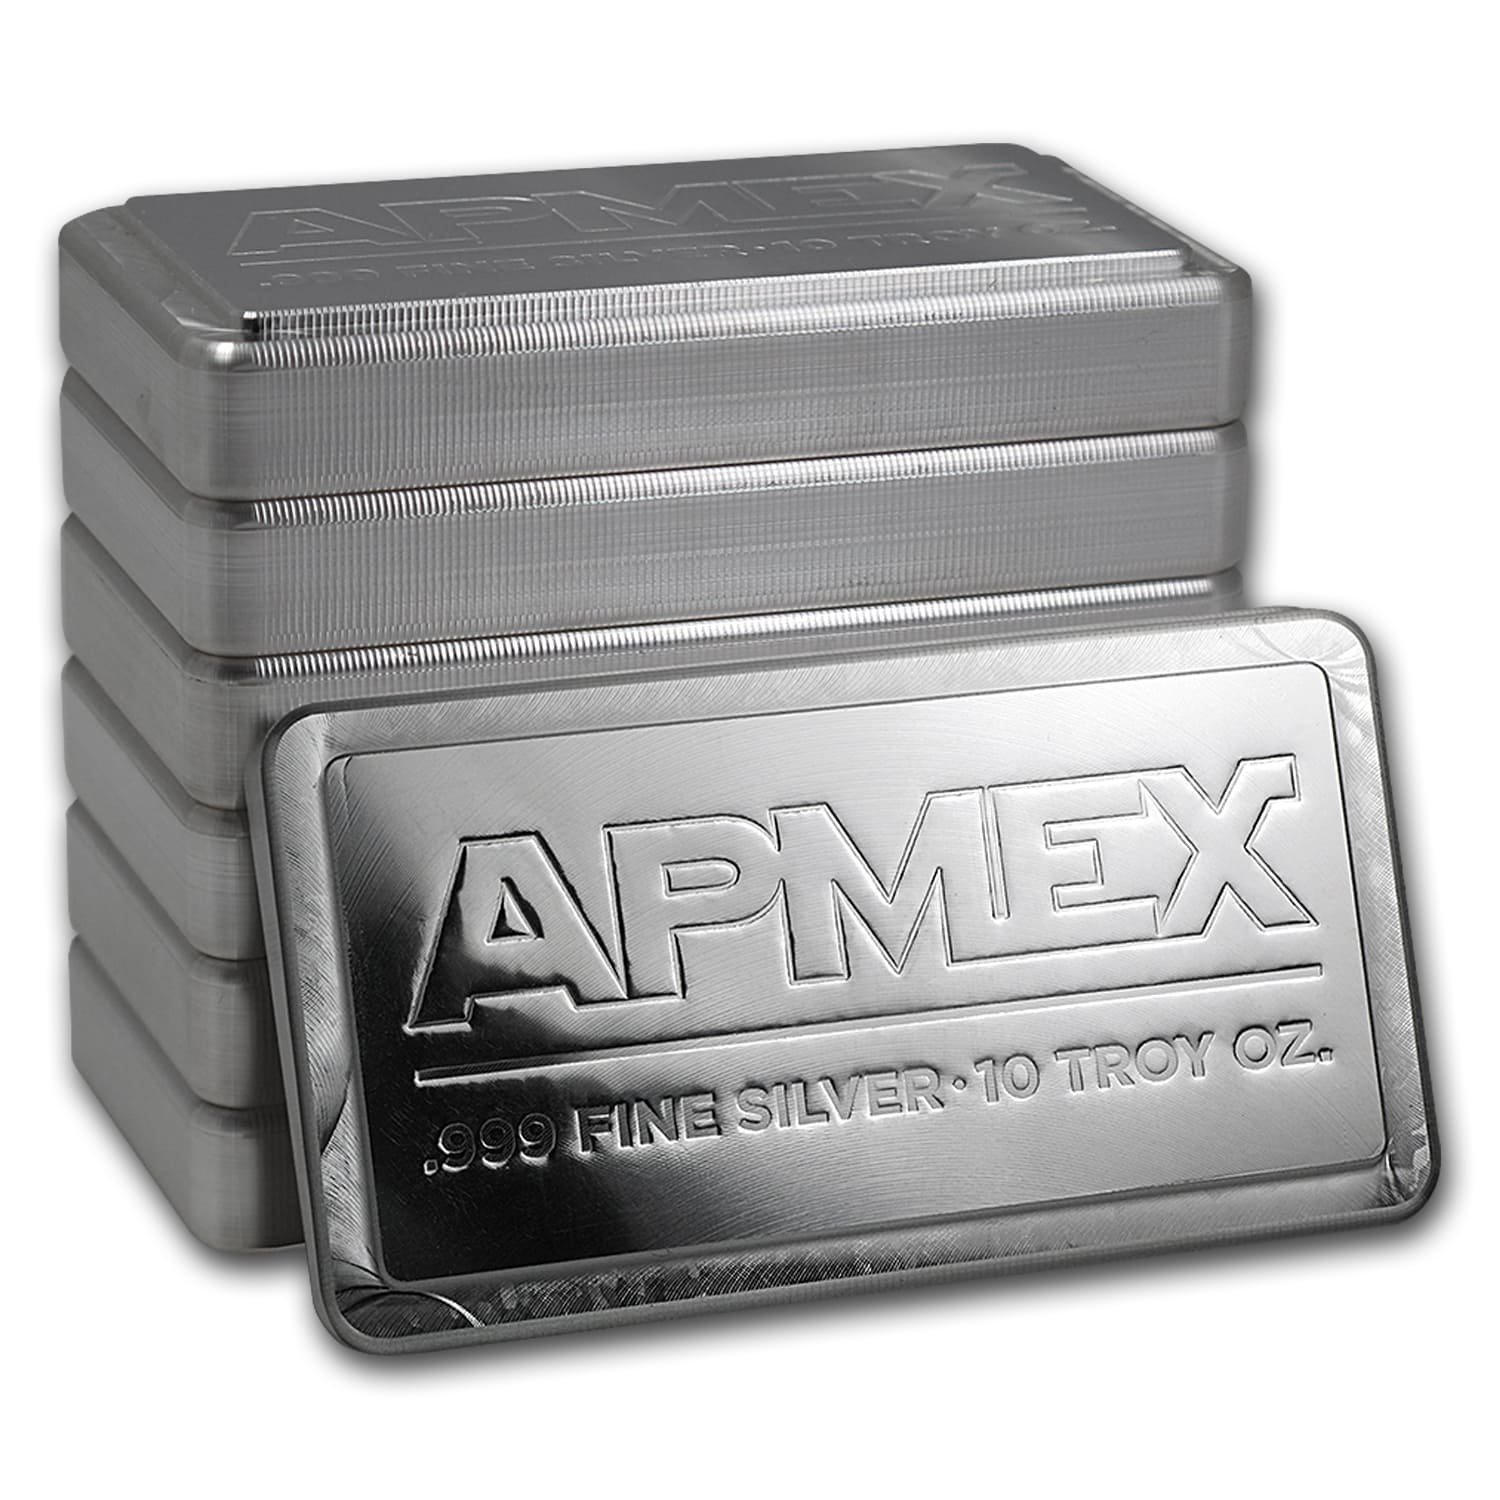 10 oz Silver Bar - APMEX (Stackable, IRA approved)